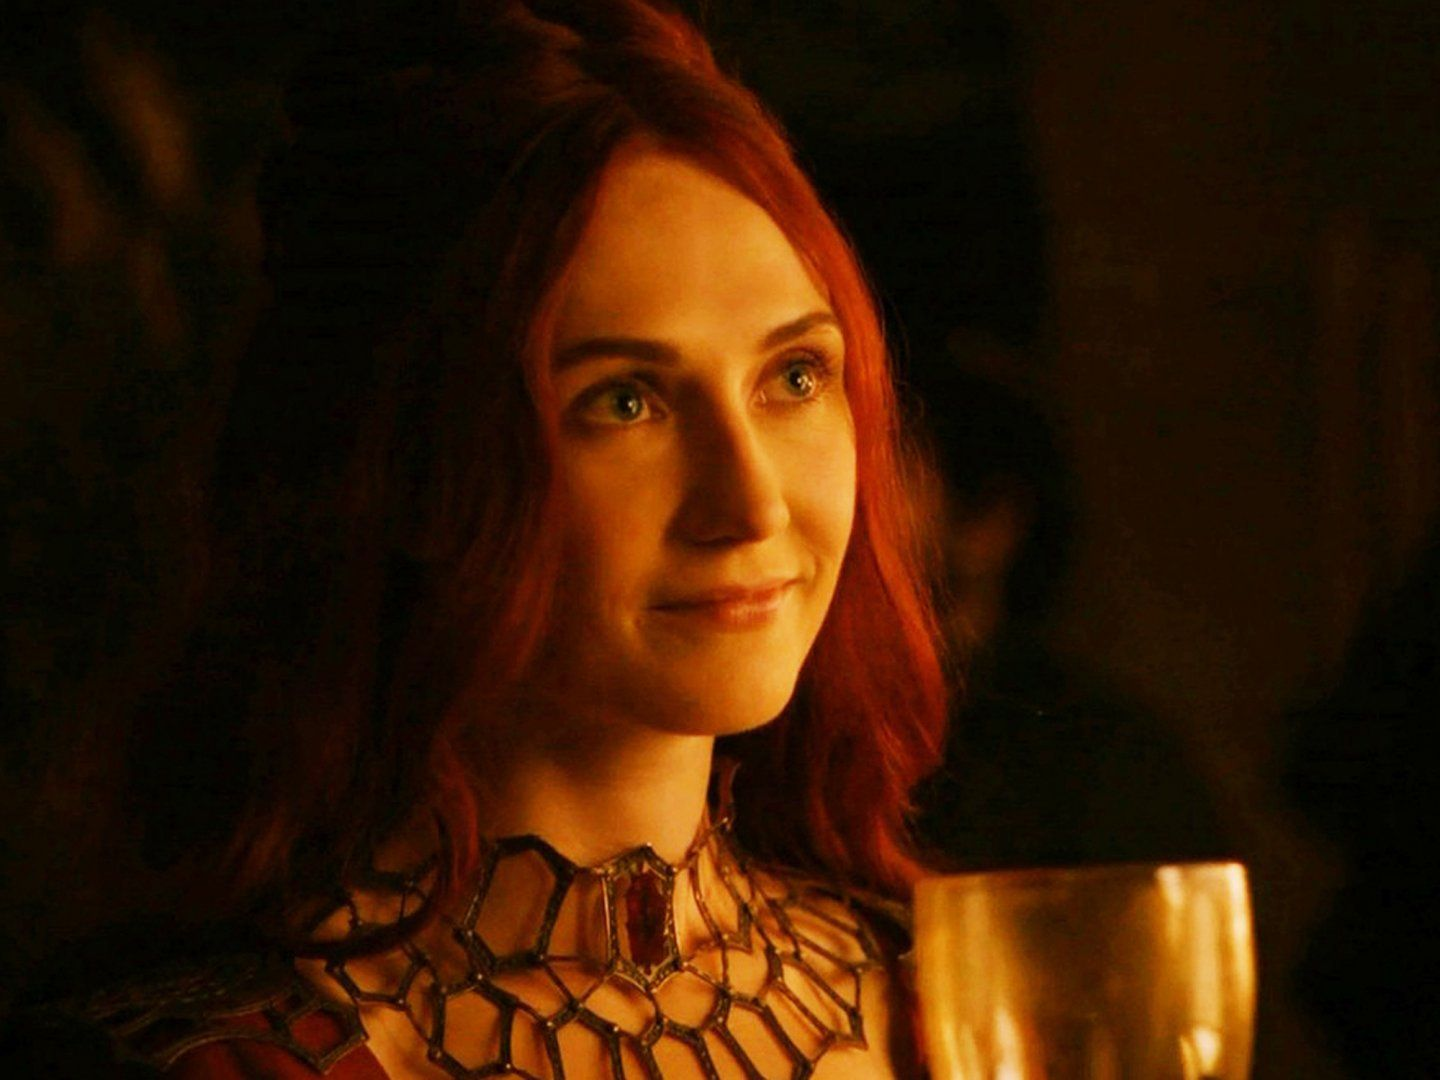 Game of thrones sexiest woman